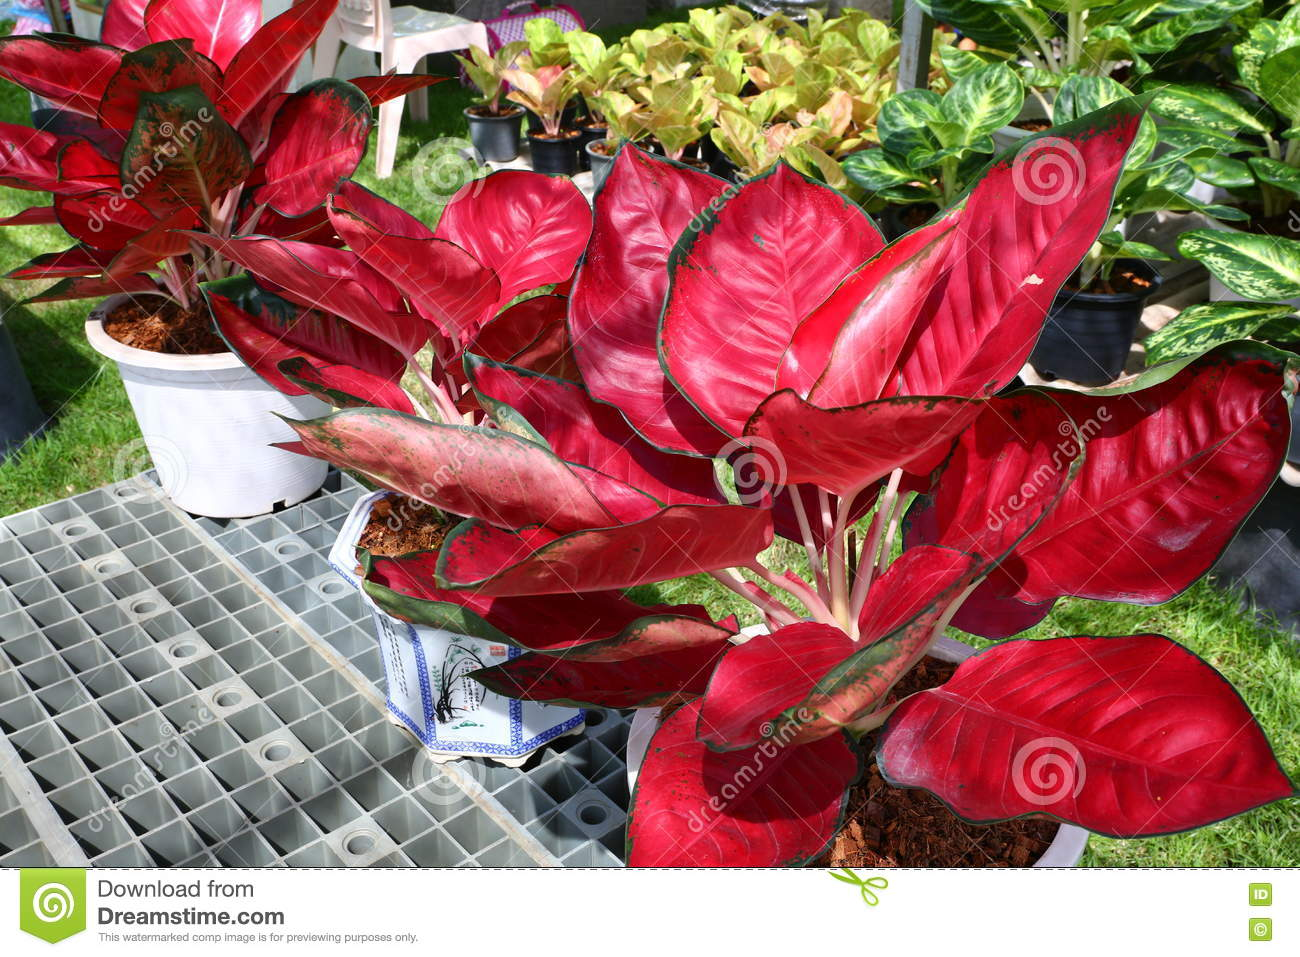 Aglaonema Plant Chinese Evergreen Stock Image - Image of ... on red camellia, red variegated plants, red aster, red pineapple, red narcissus, red anthurium, red zebra plant, red wandering jew, red house plants, red crotons, red gerbera, red tropical plants names, red flowering plants, red peace lily, red fittonia, red angelonia, red photinia, red anemone, red acacia, red allamanda,